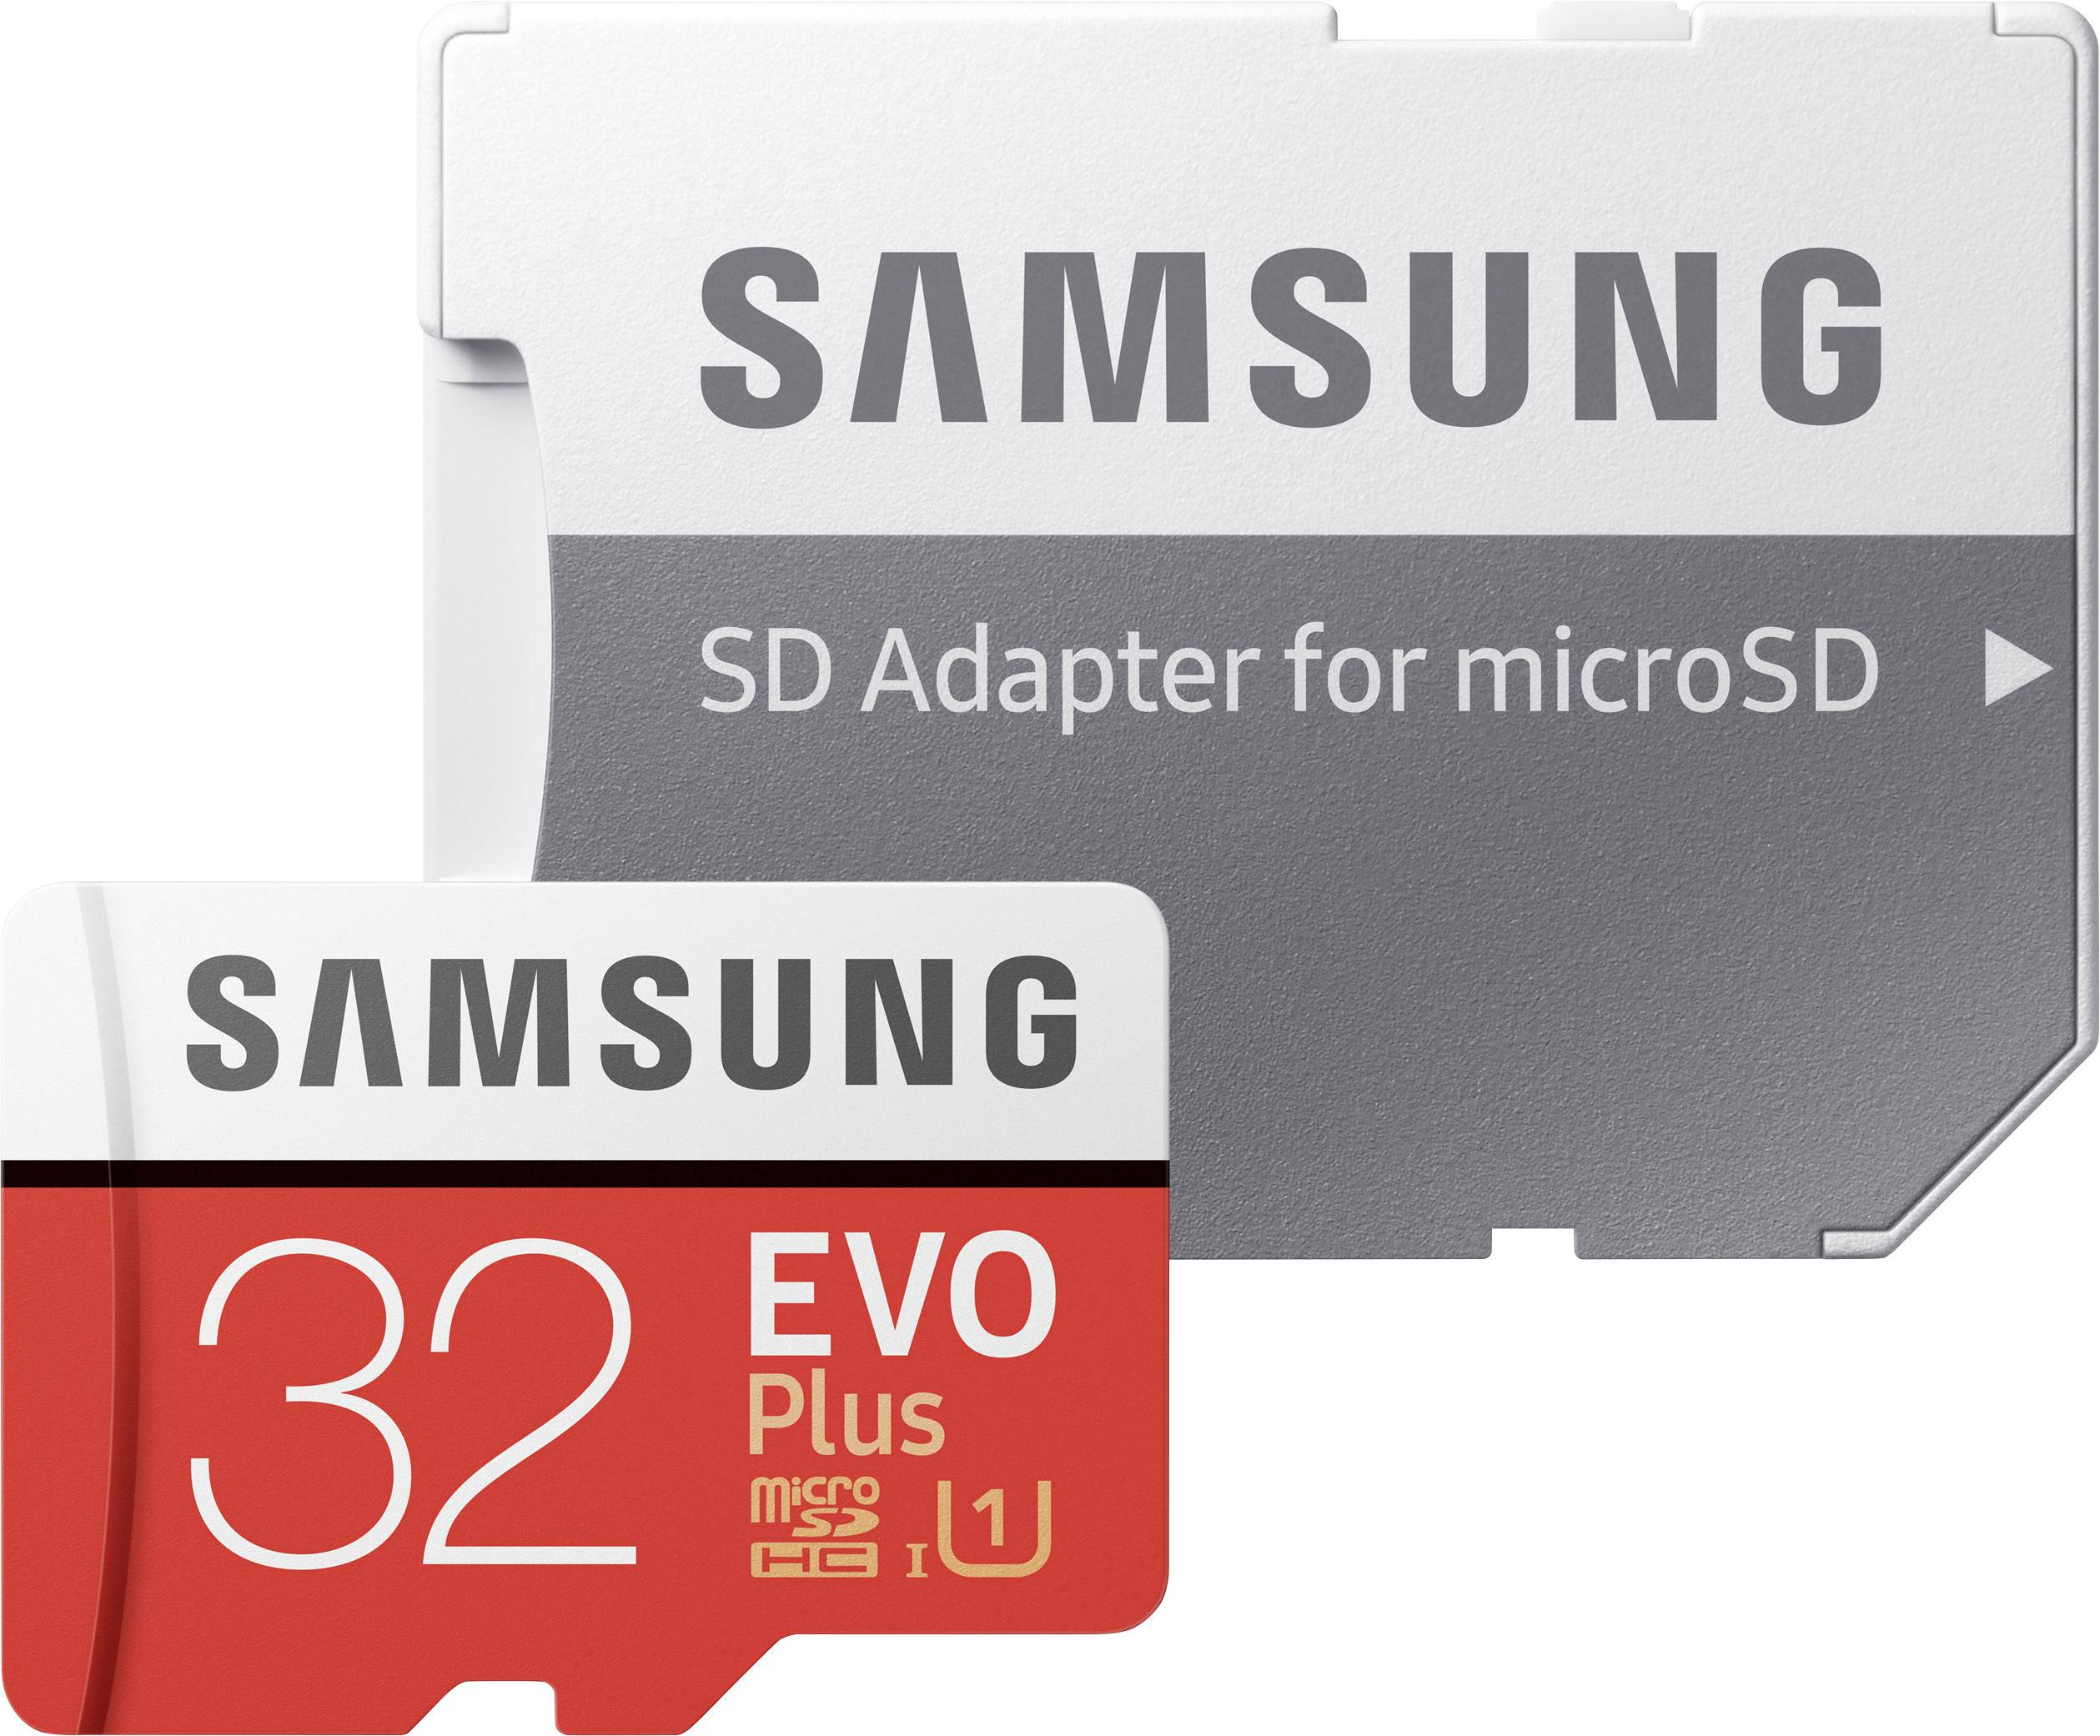 Micro Sd Karte 32gb.Samsung Evo Plus Microsdhc Karte 32 Gb Class 10 Uhs I Inkl Sd Adapter